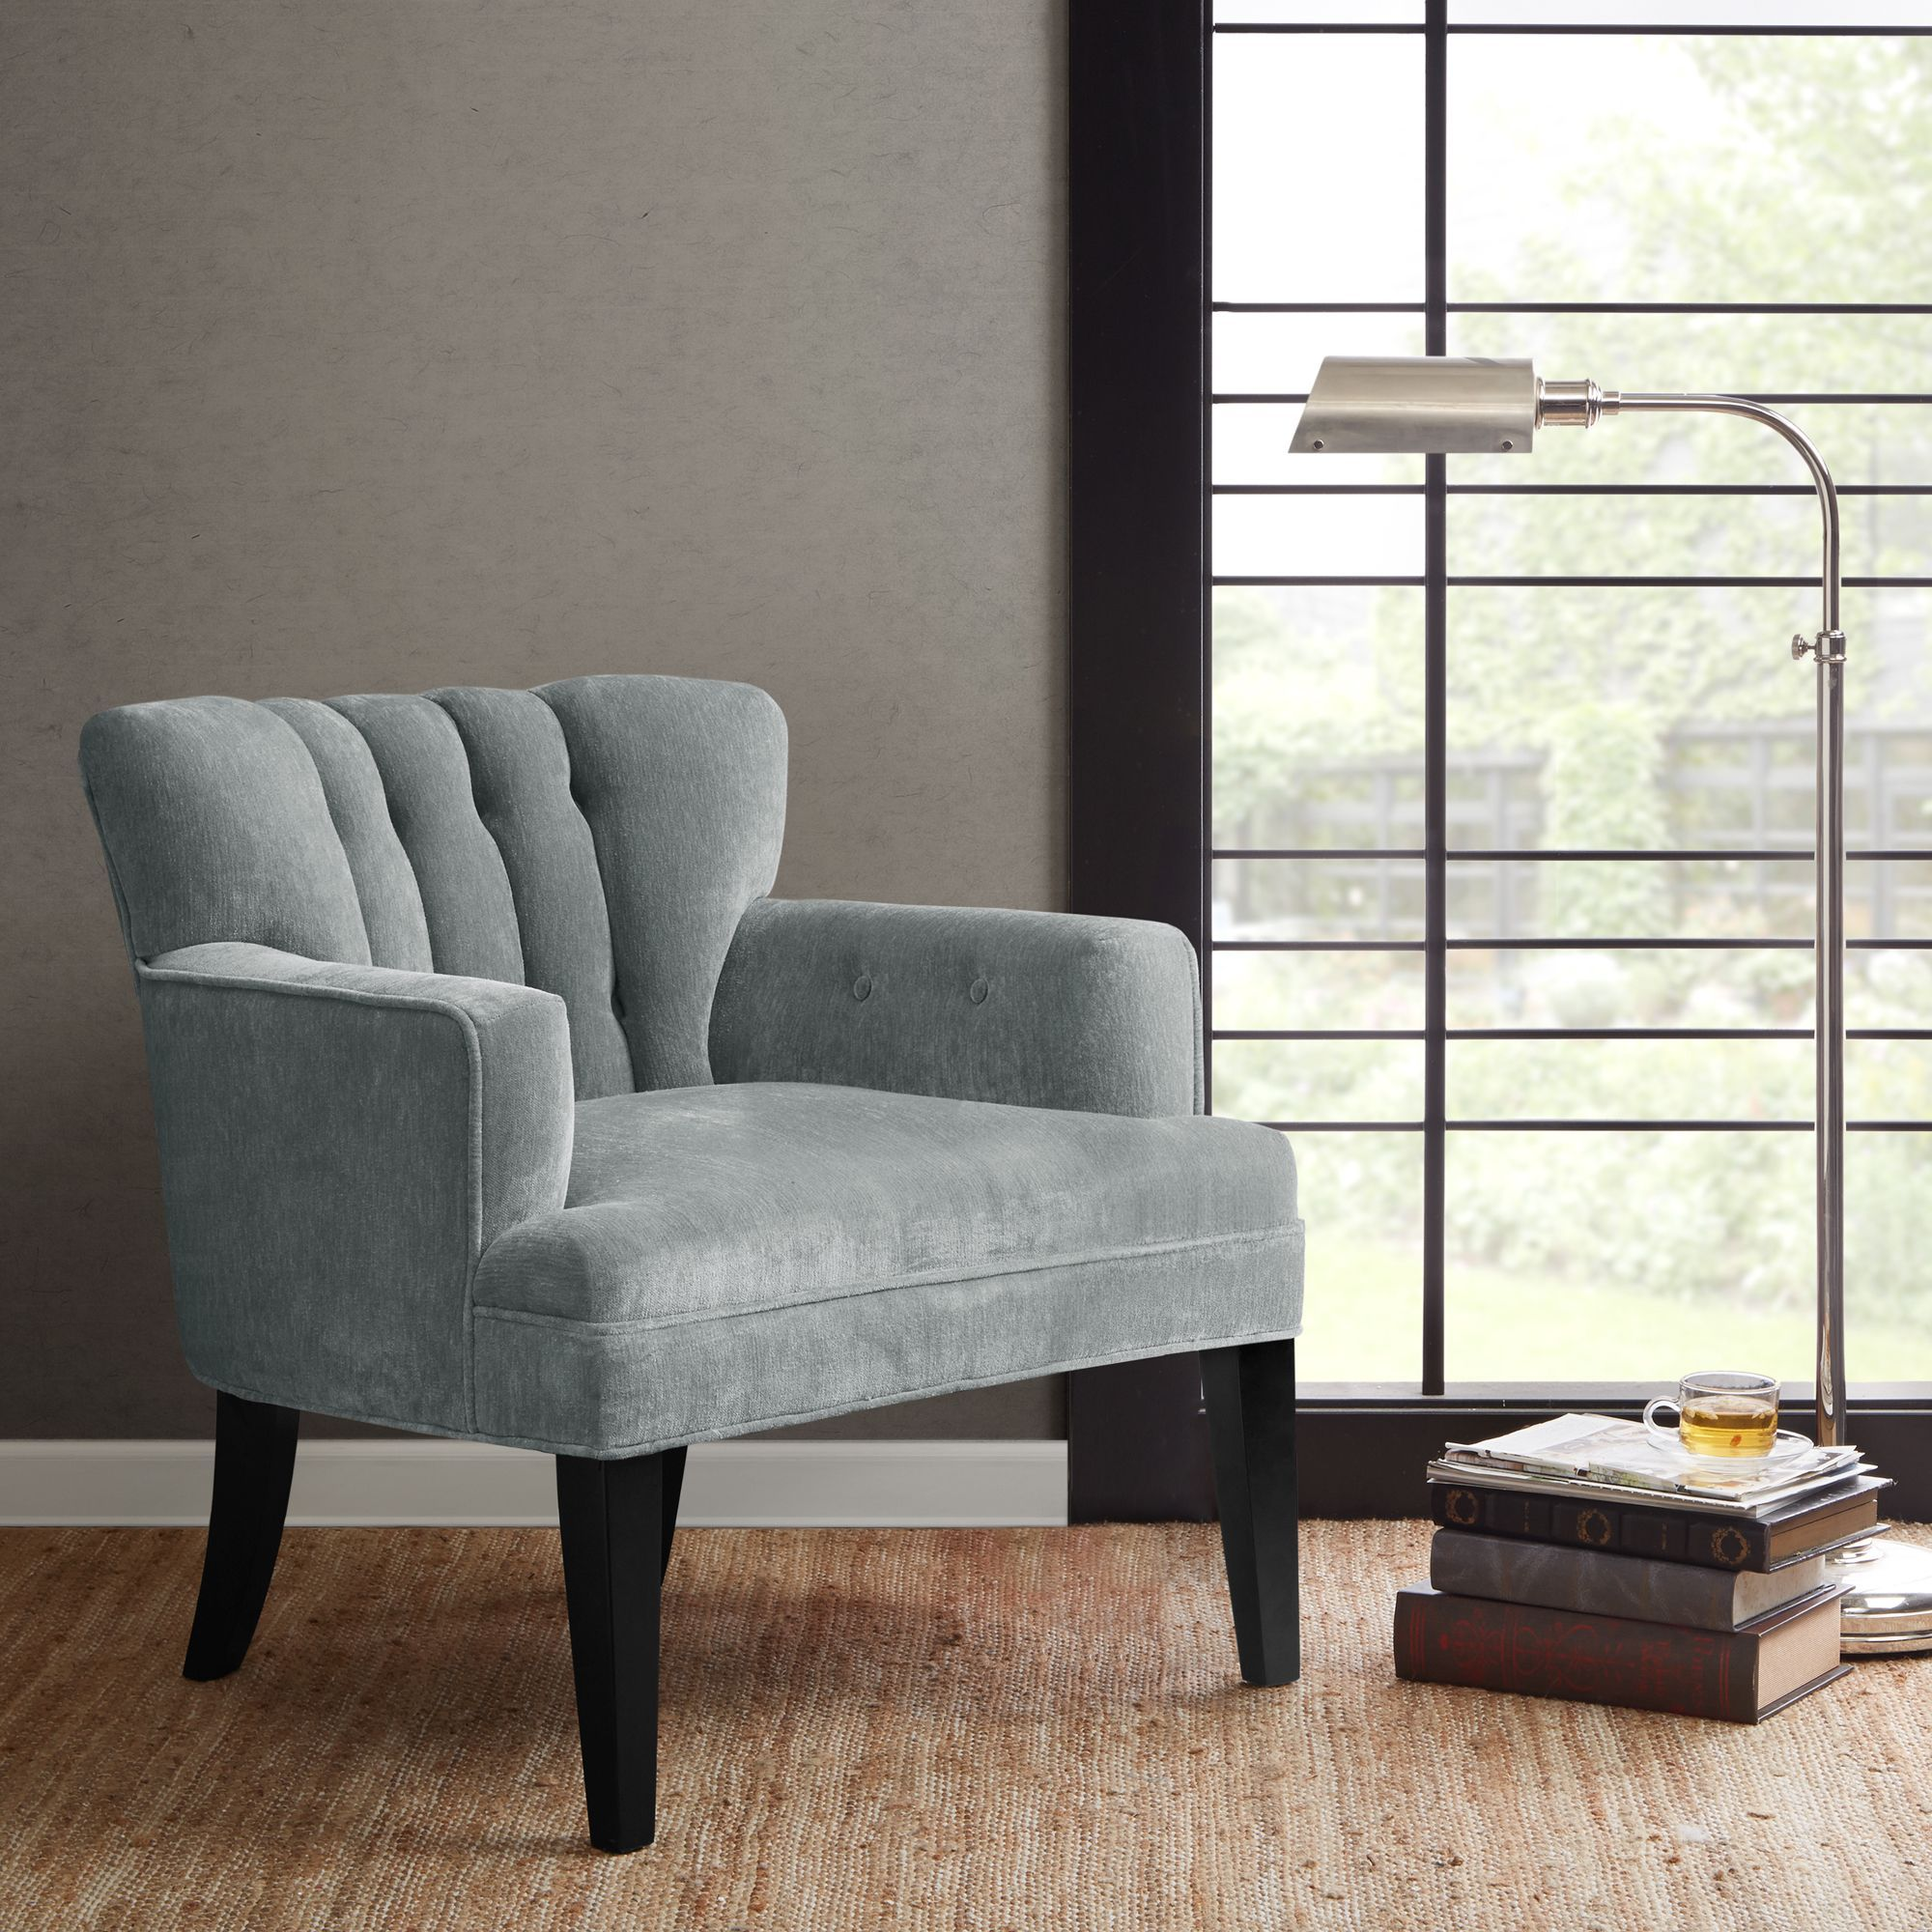 Living Room Club Chairs Madison Park Gianna Blue Tufted Club Chair 2975w X 31d X 31h